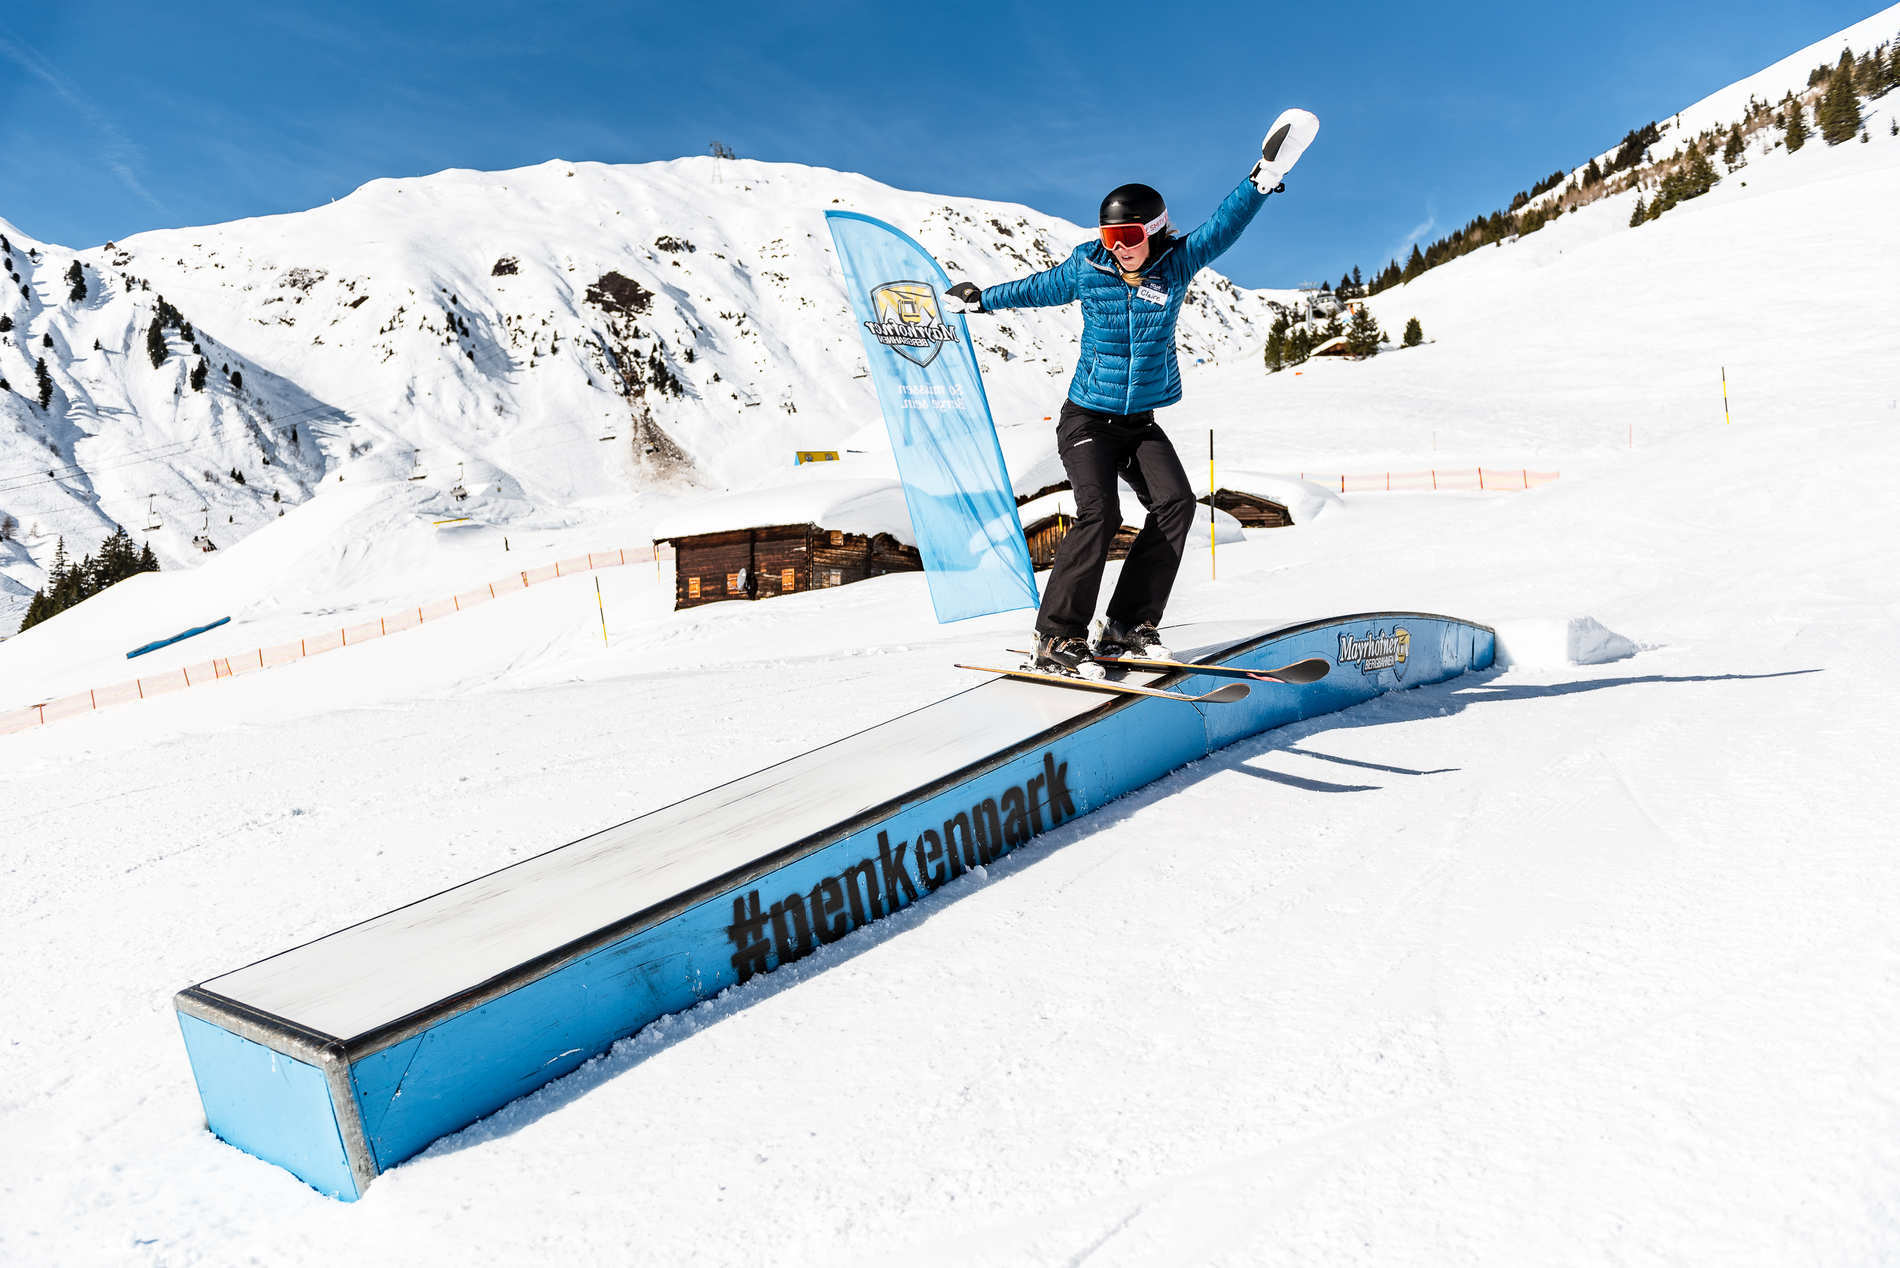 mayrhofen 16 02 2019 action fs unknown rider christian riefenberg qparks 11